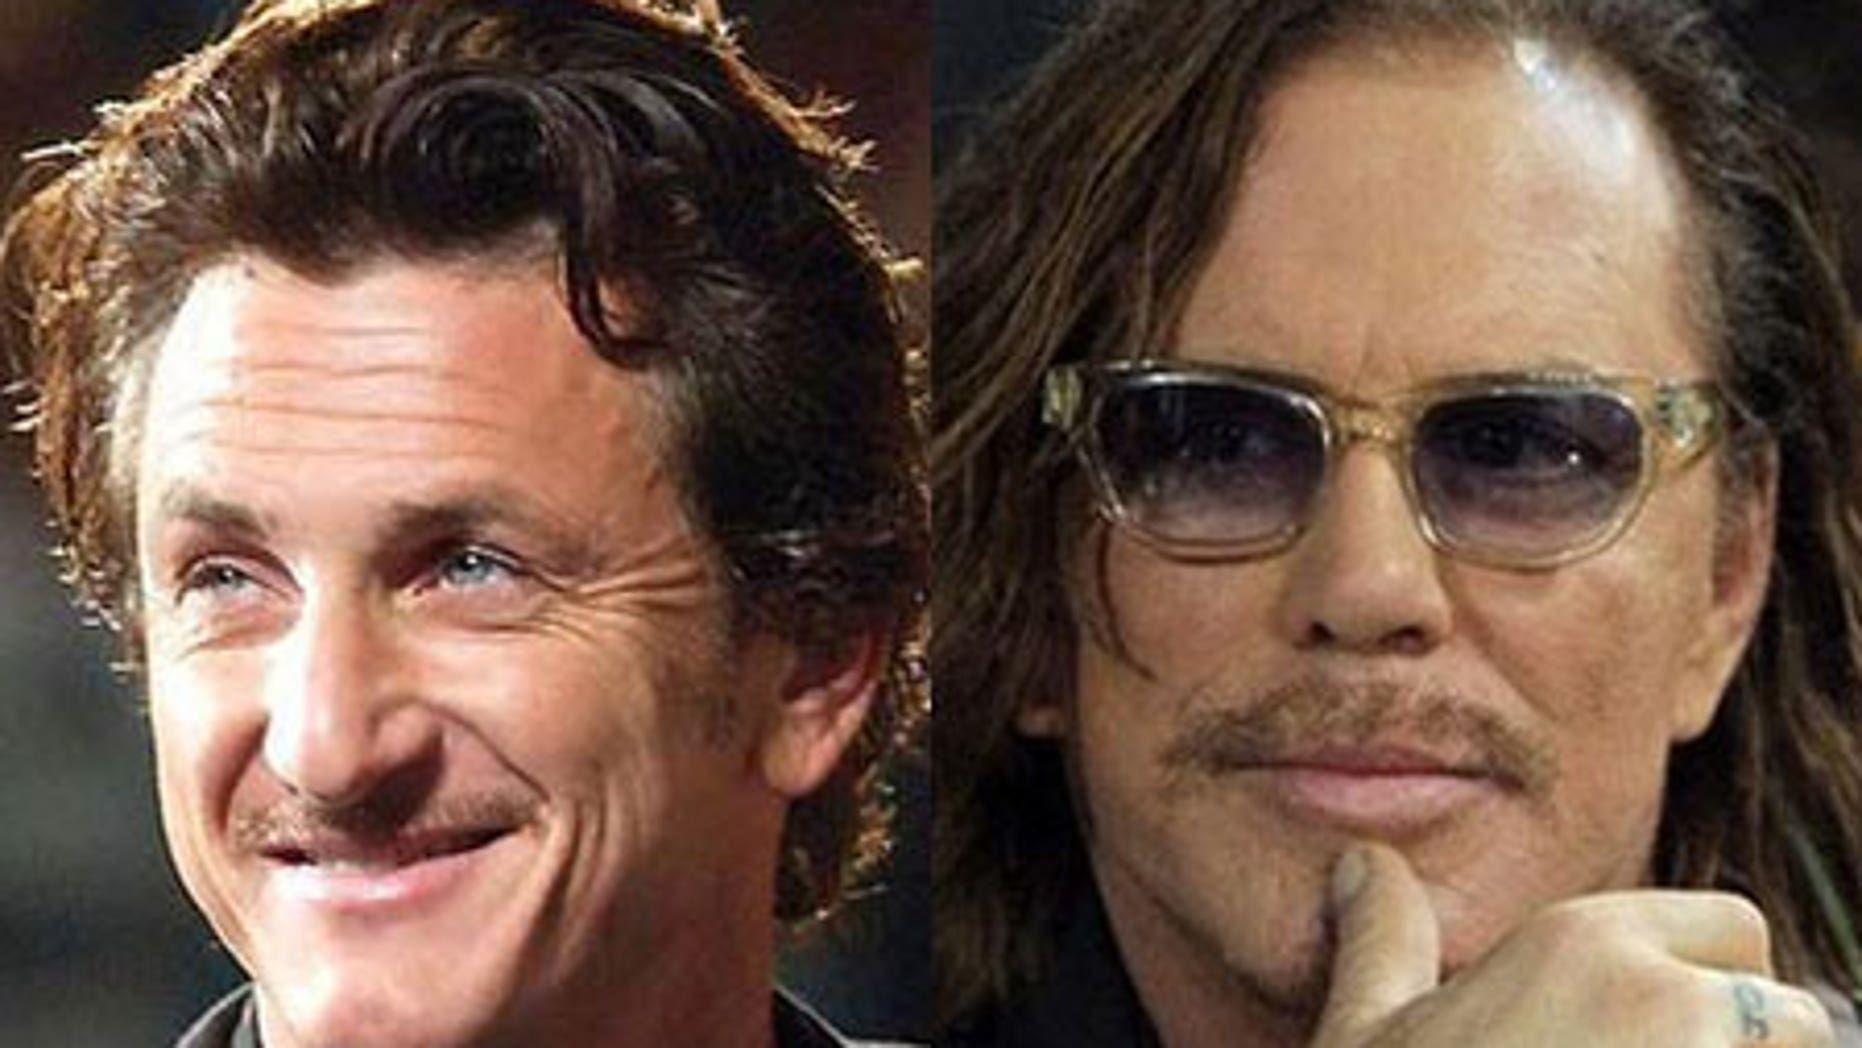 The competition is definitely between Sean Penn and Mickey Rourke, Dr. Oscar says.